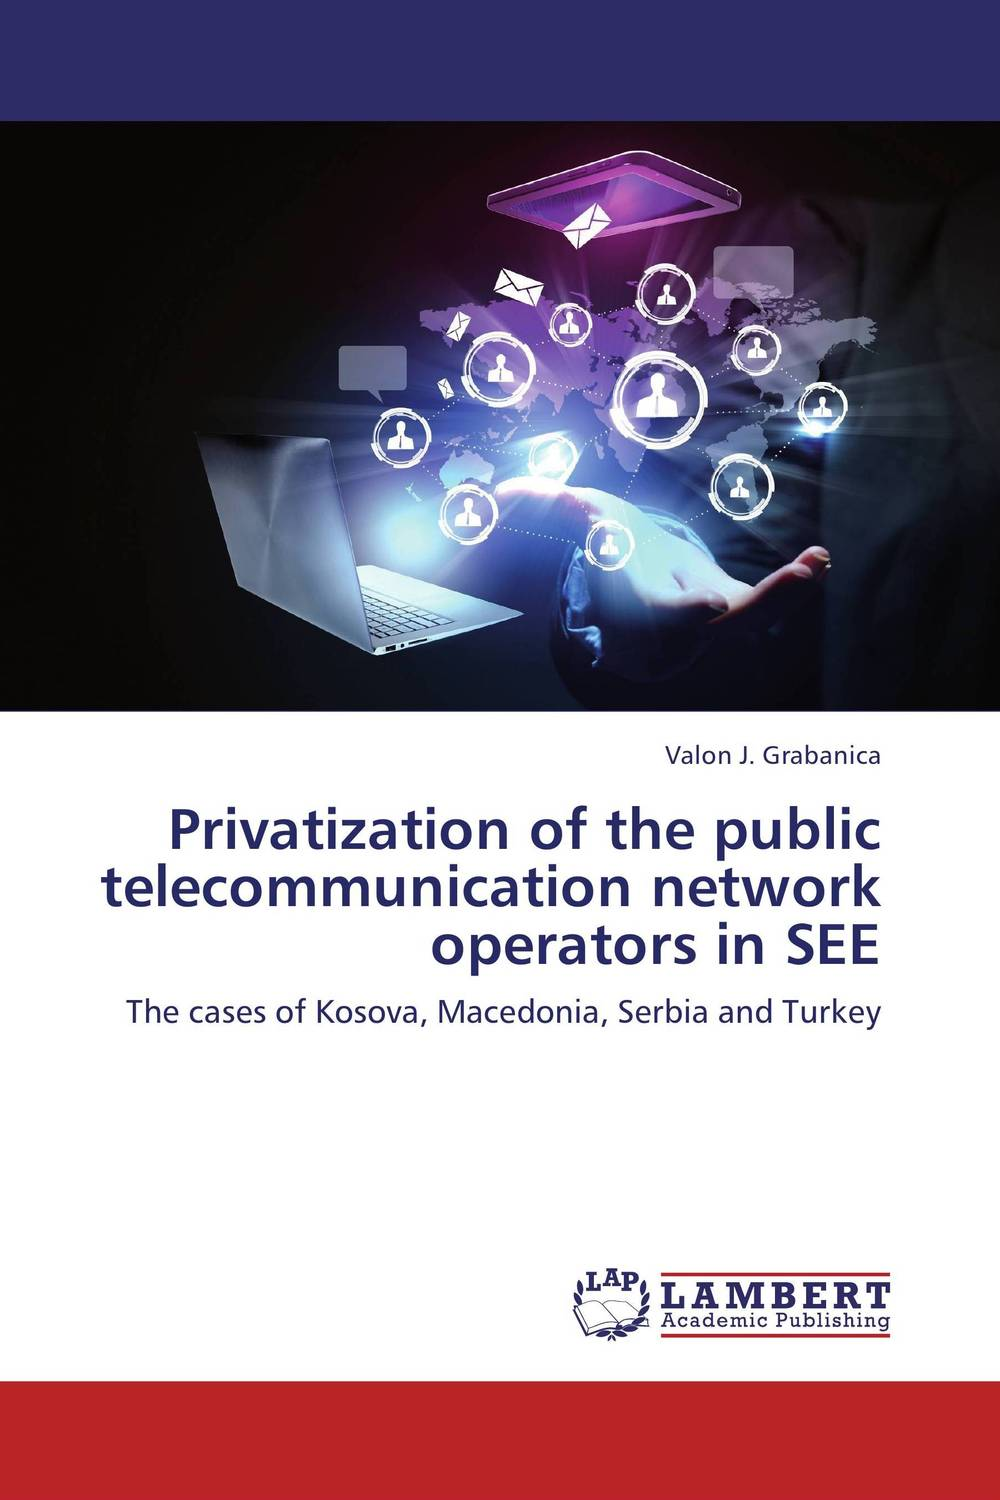 Privatization of the public telecommunication network operators in SEE the counterlife